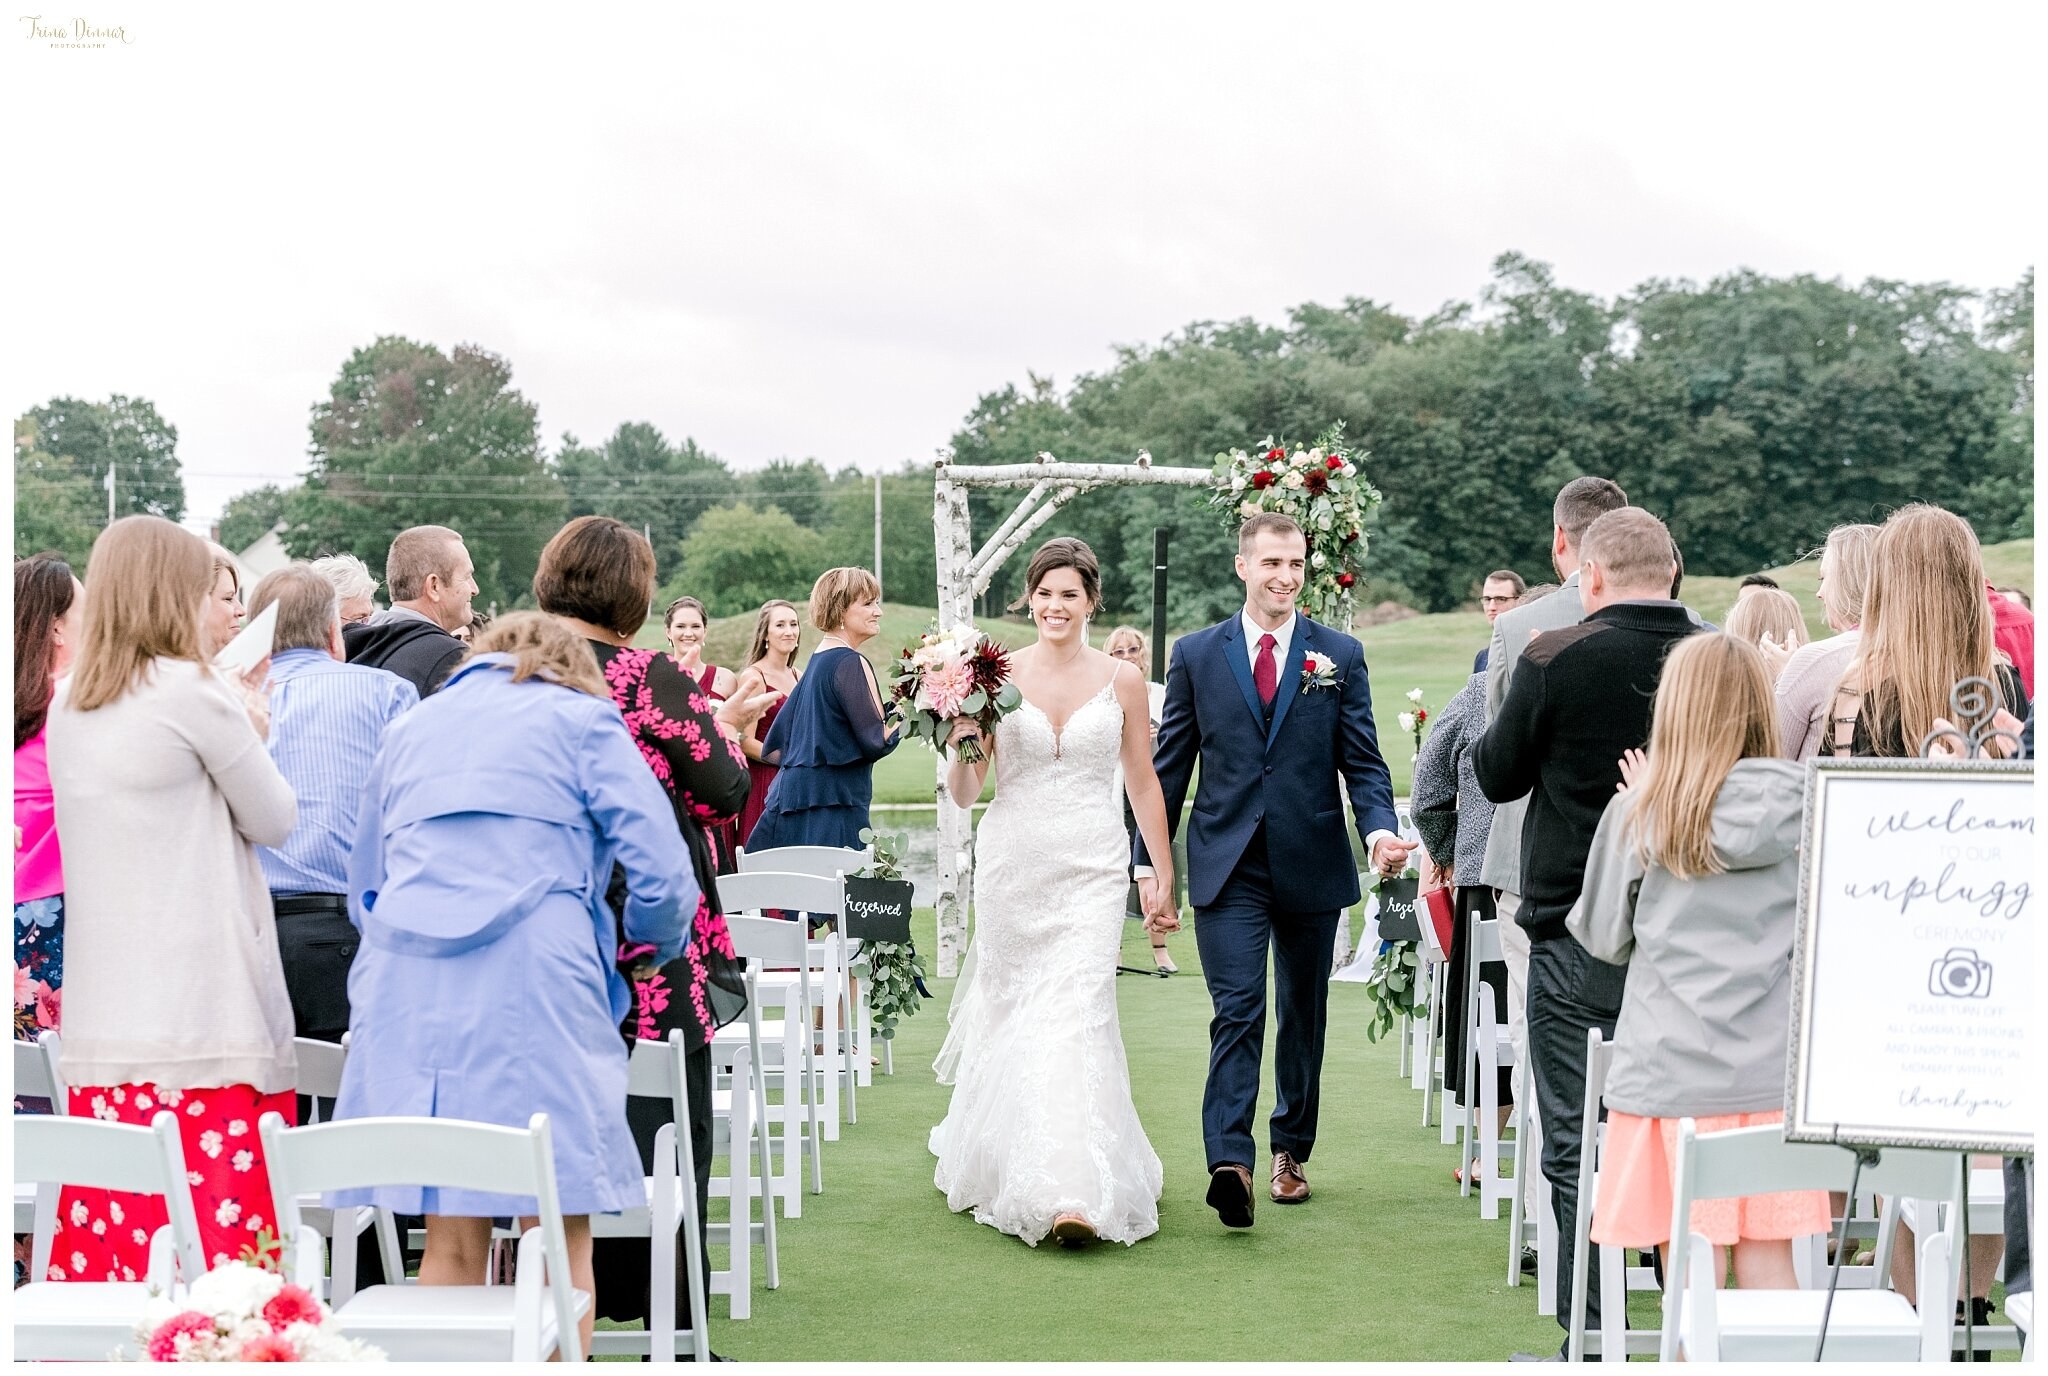 Alayna and Shawn married at the Maine Falmouth Country Club.